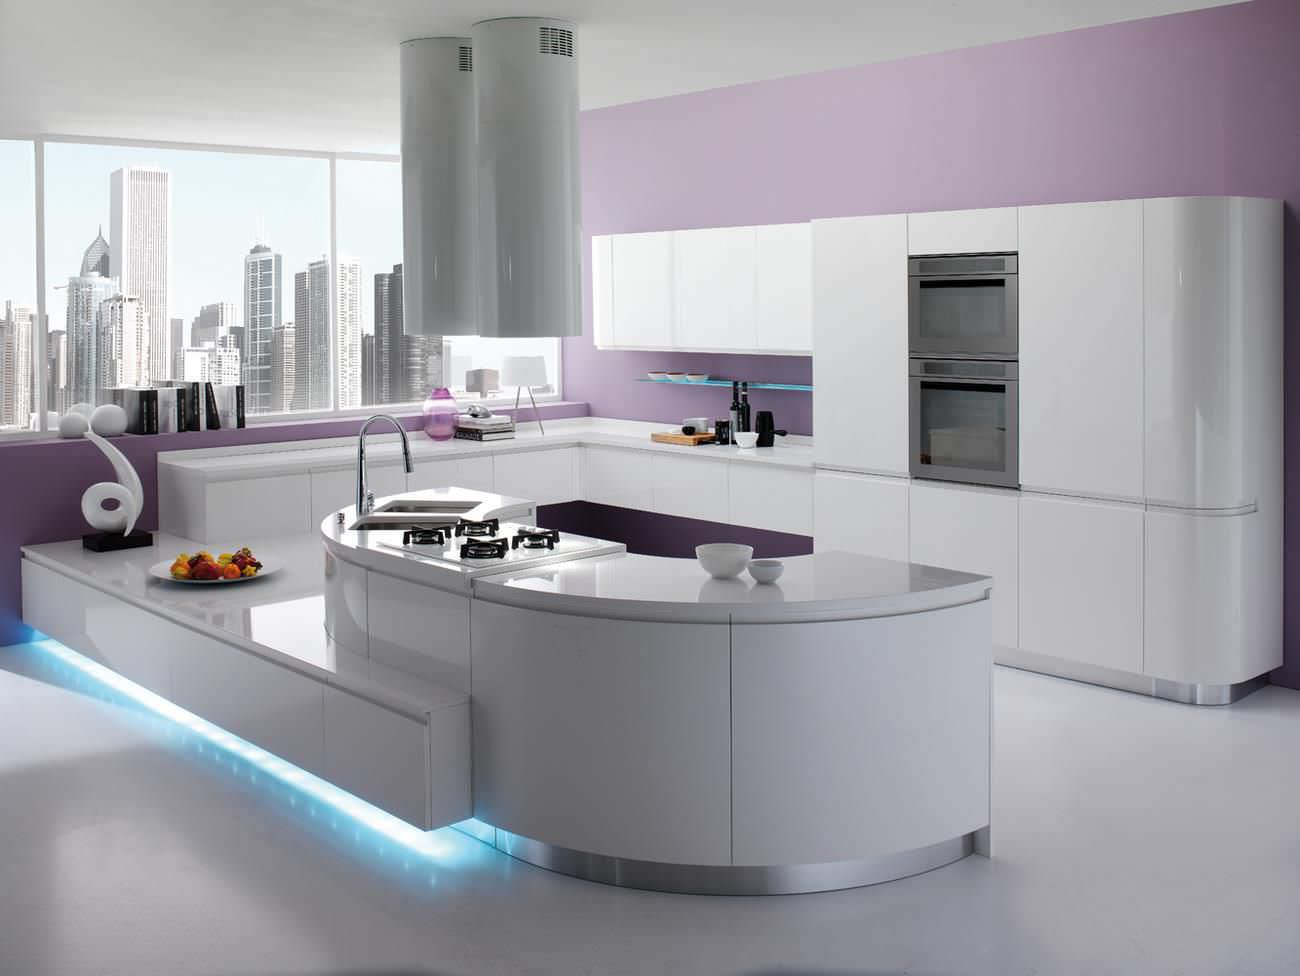 Stunning Cucine Moderne A Isola Pictures - Ideas & Design 2017 ...